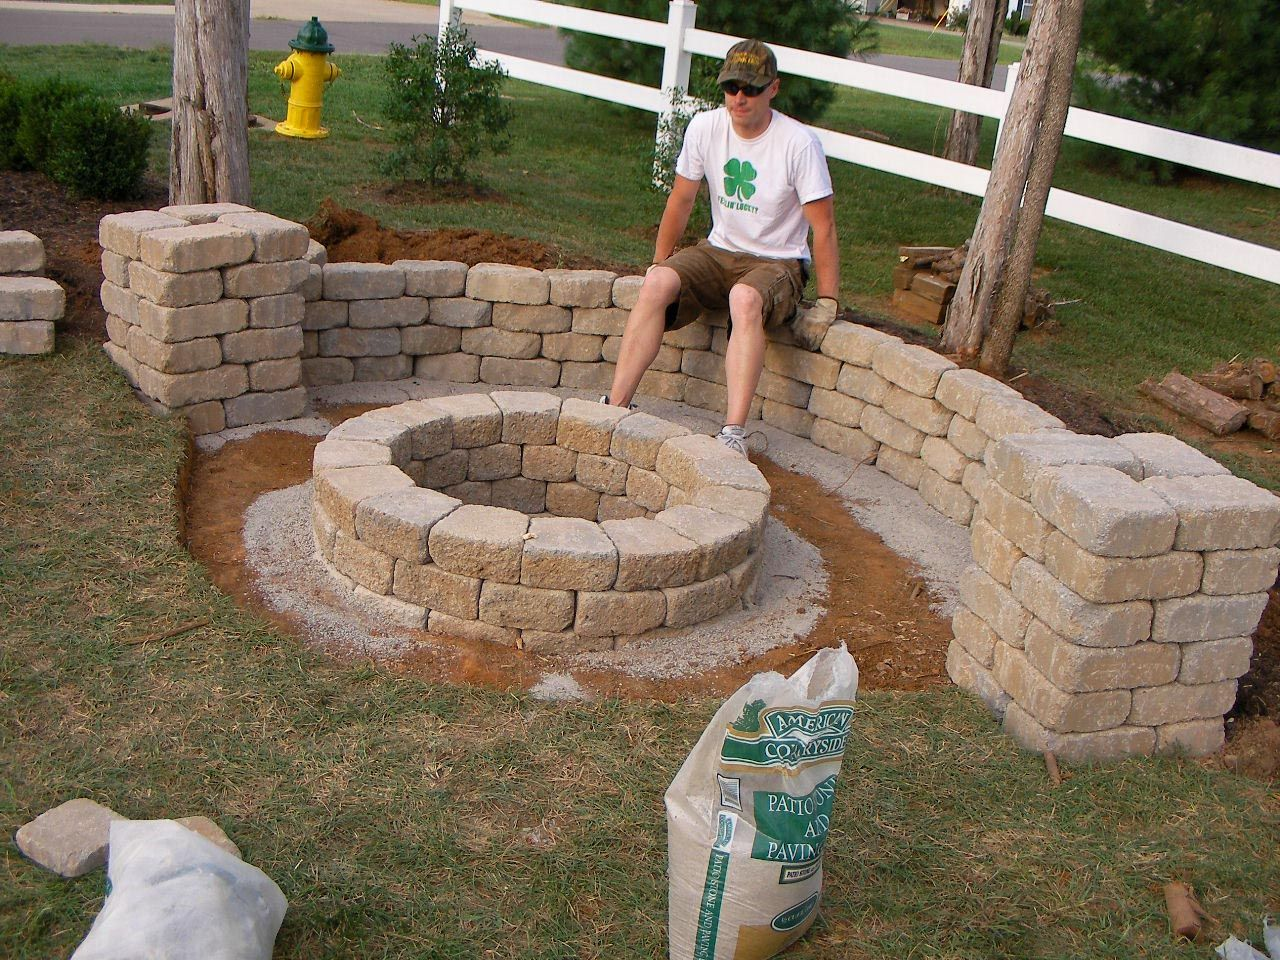 Easy Backyard Designs easy backyard fire pit designs … | firepits | pinte…